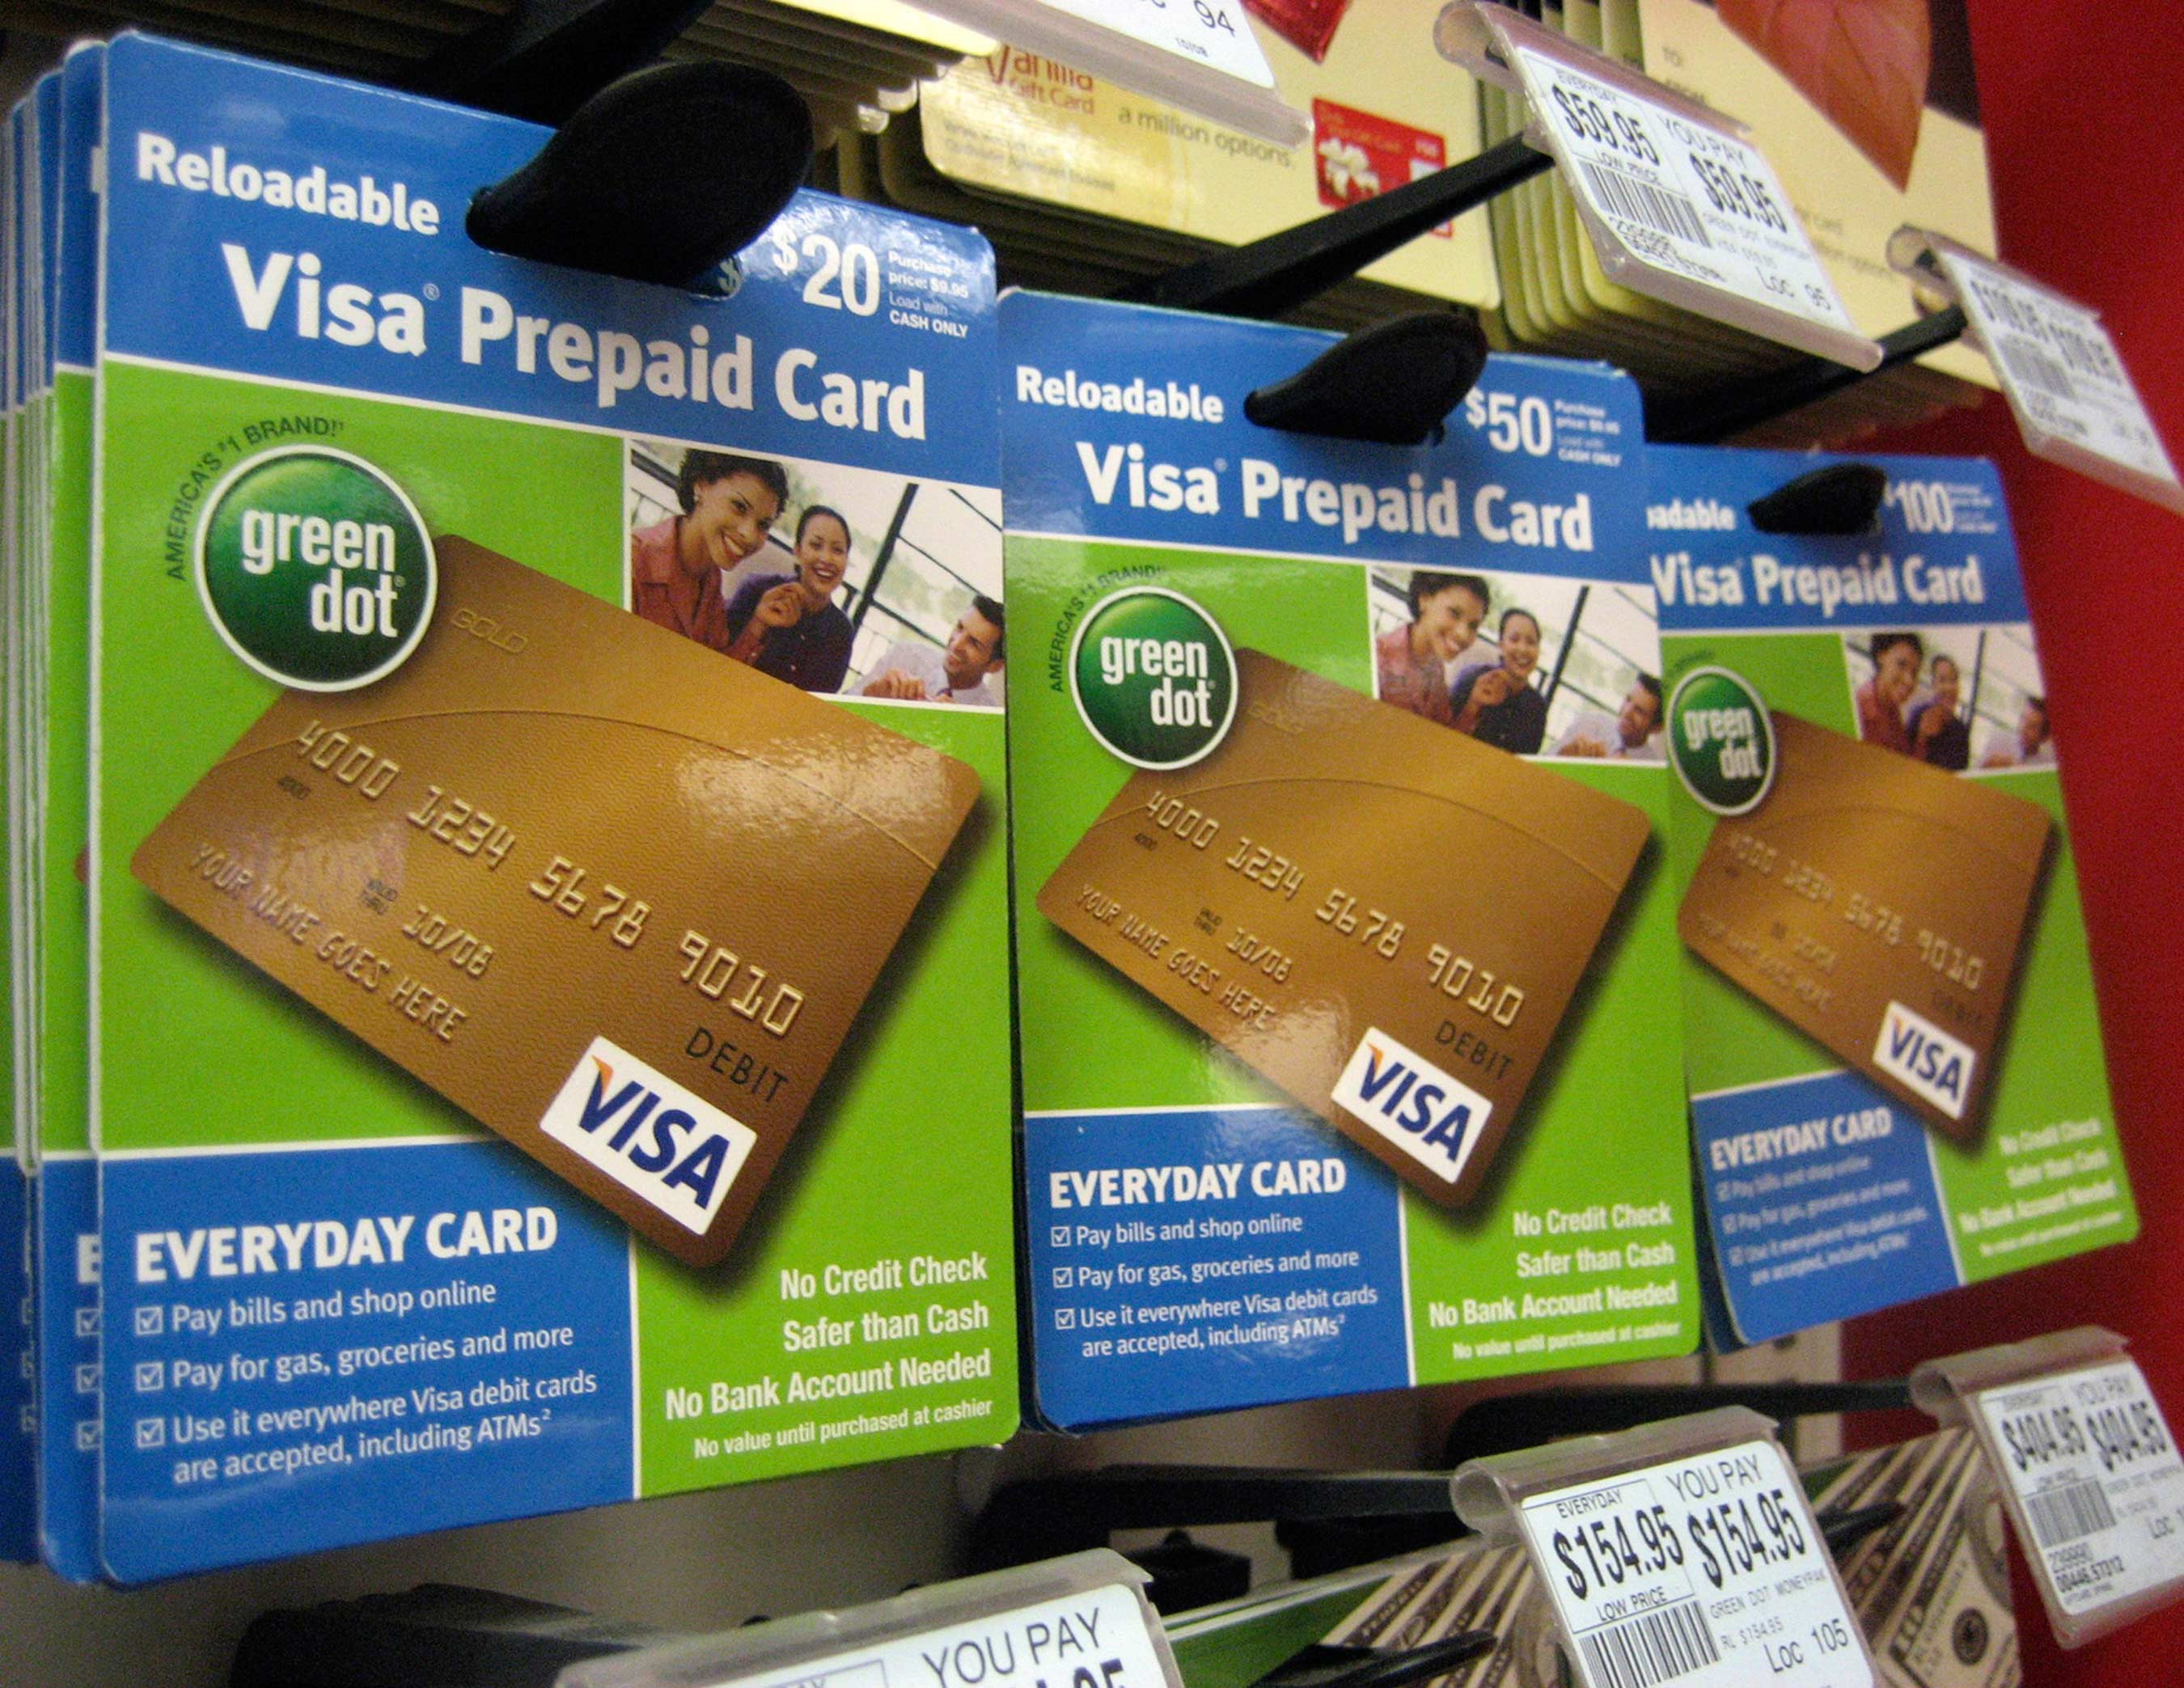 Where To Purchase Prepaid Visa Cards